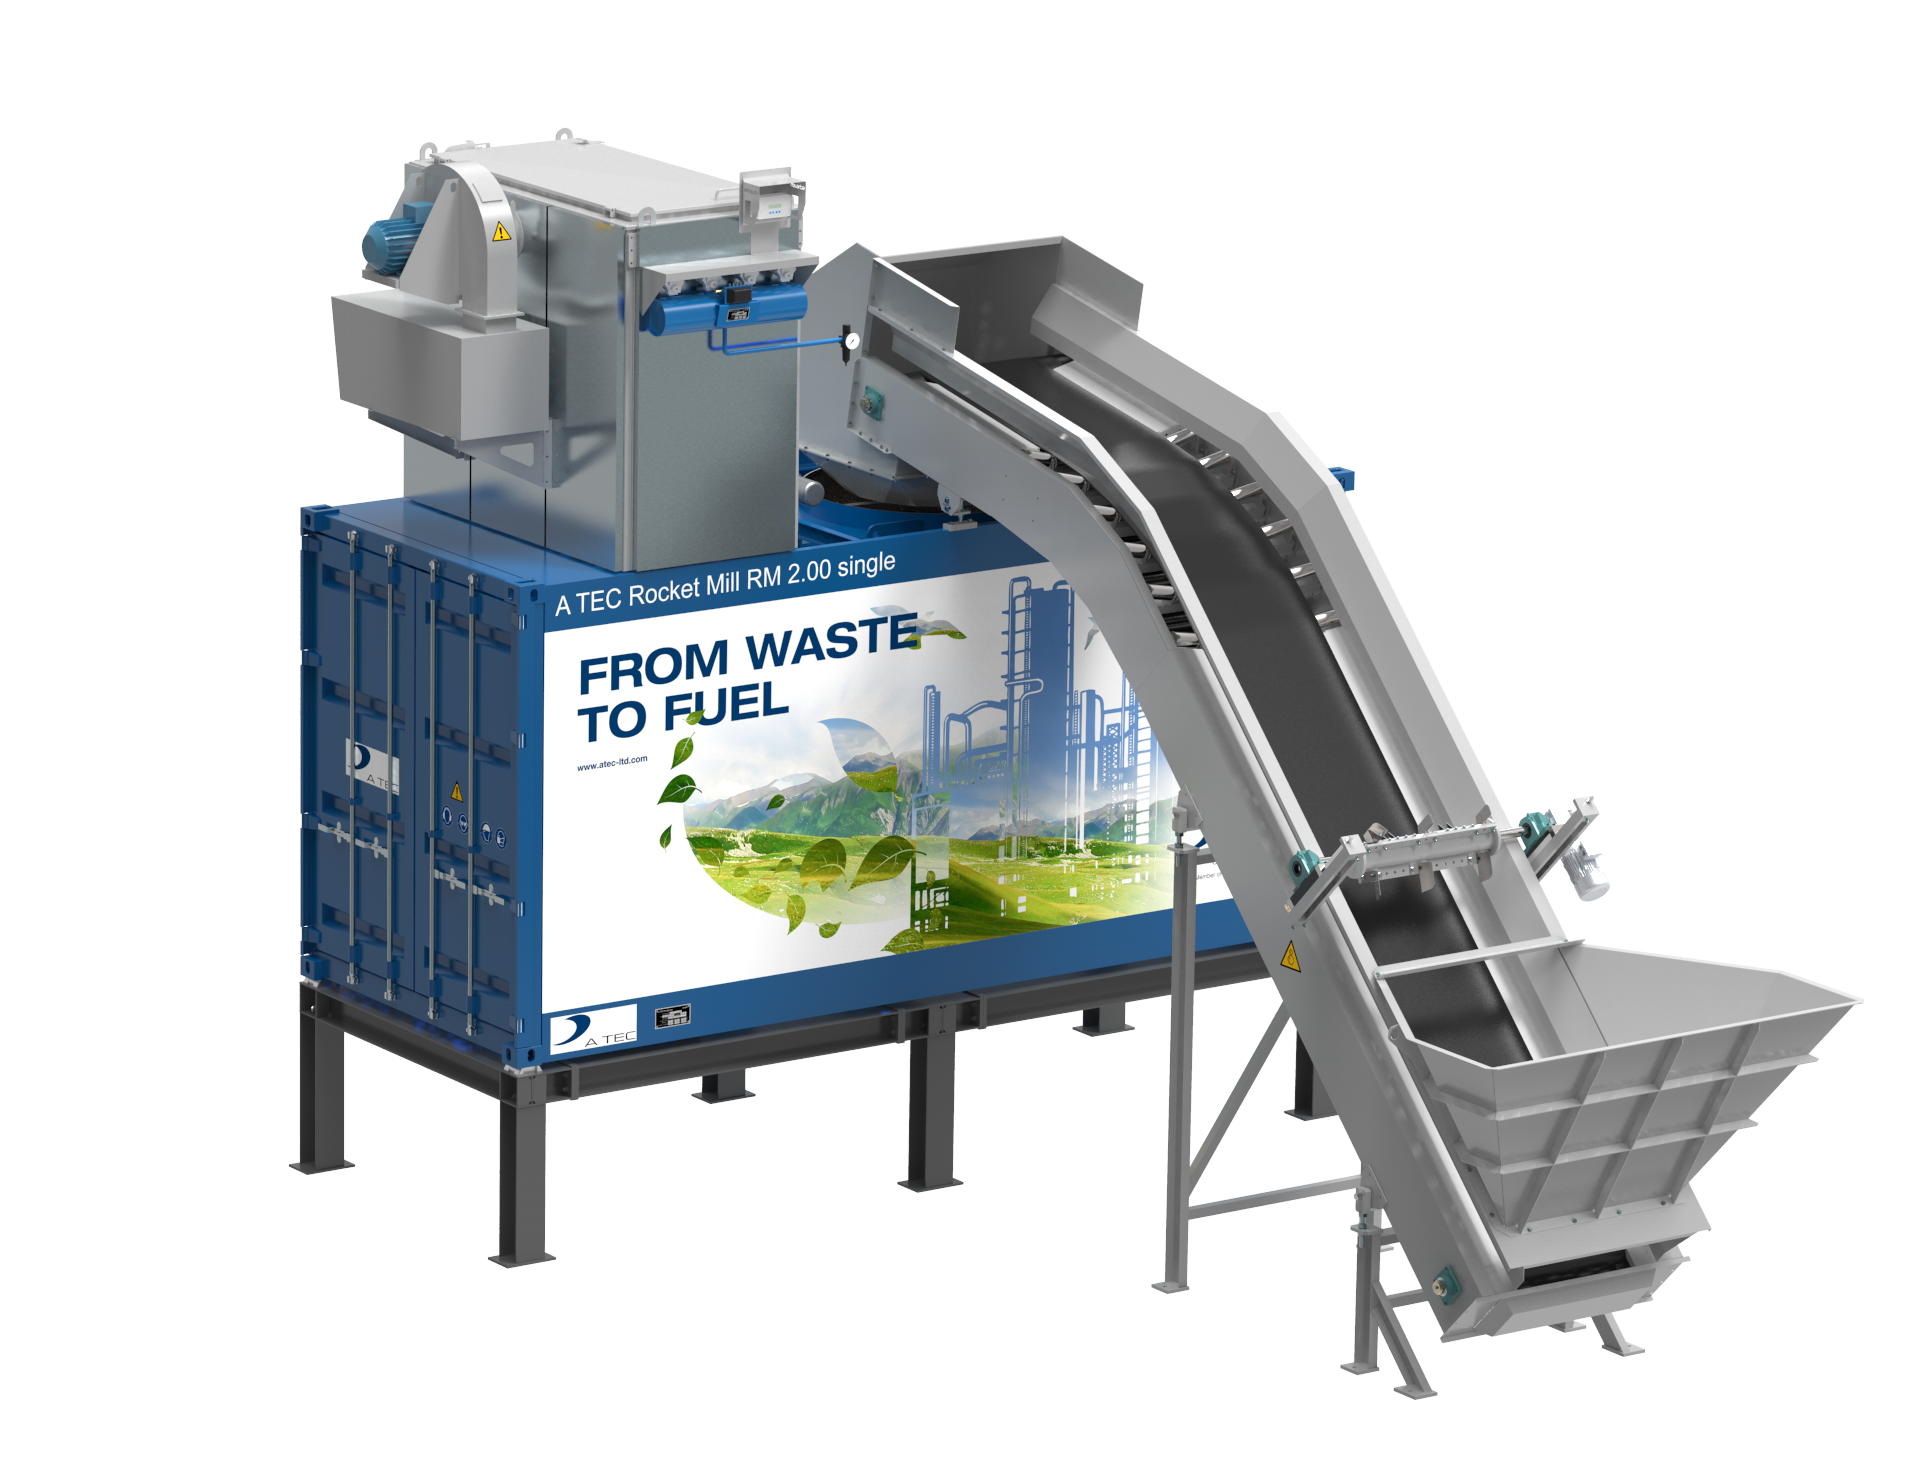 Turkish Cement Grinding Plant : New mobile version of a tec s rocket mill mining